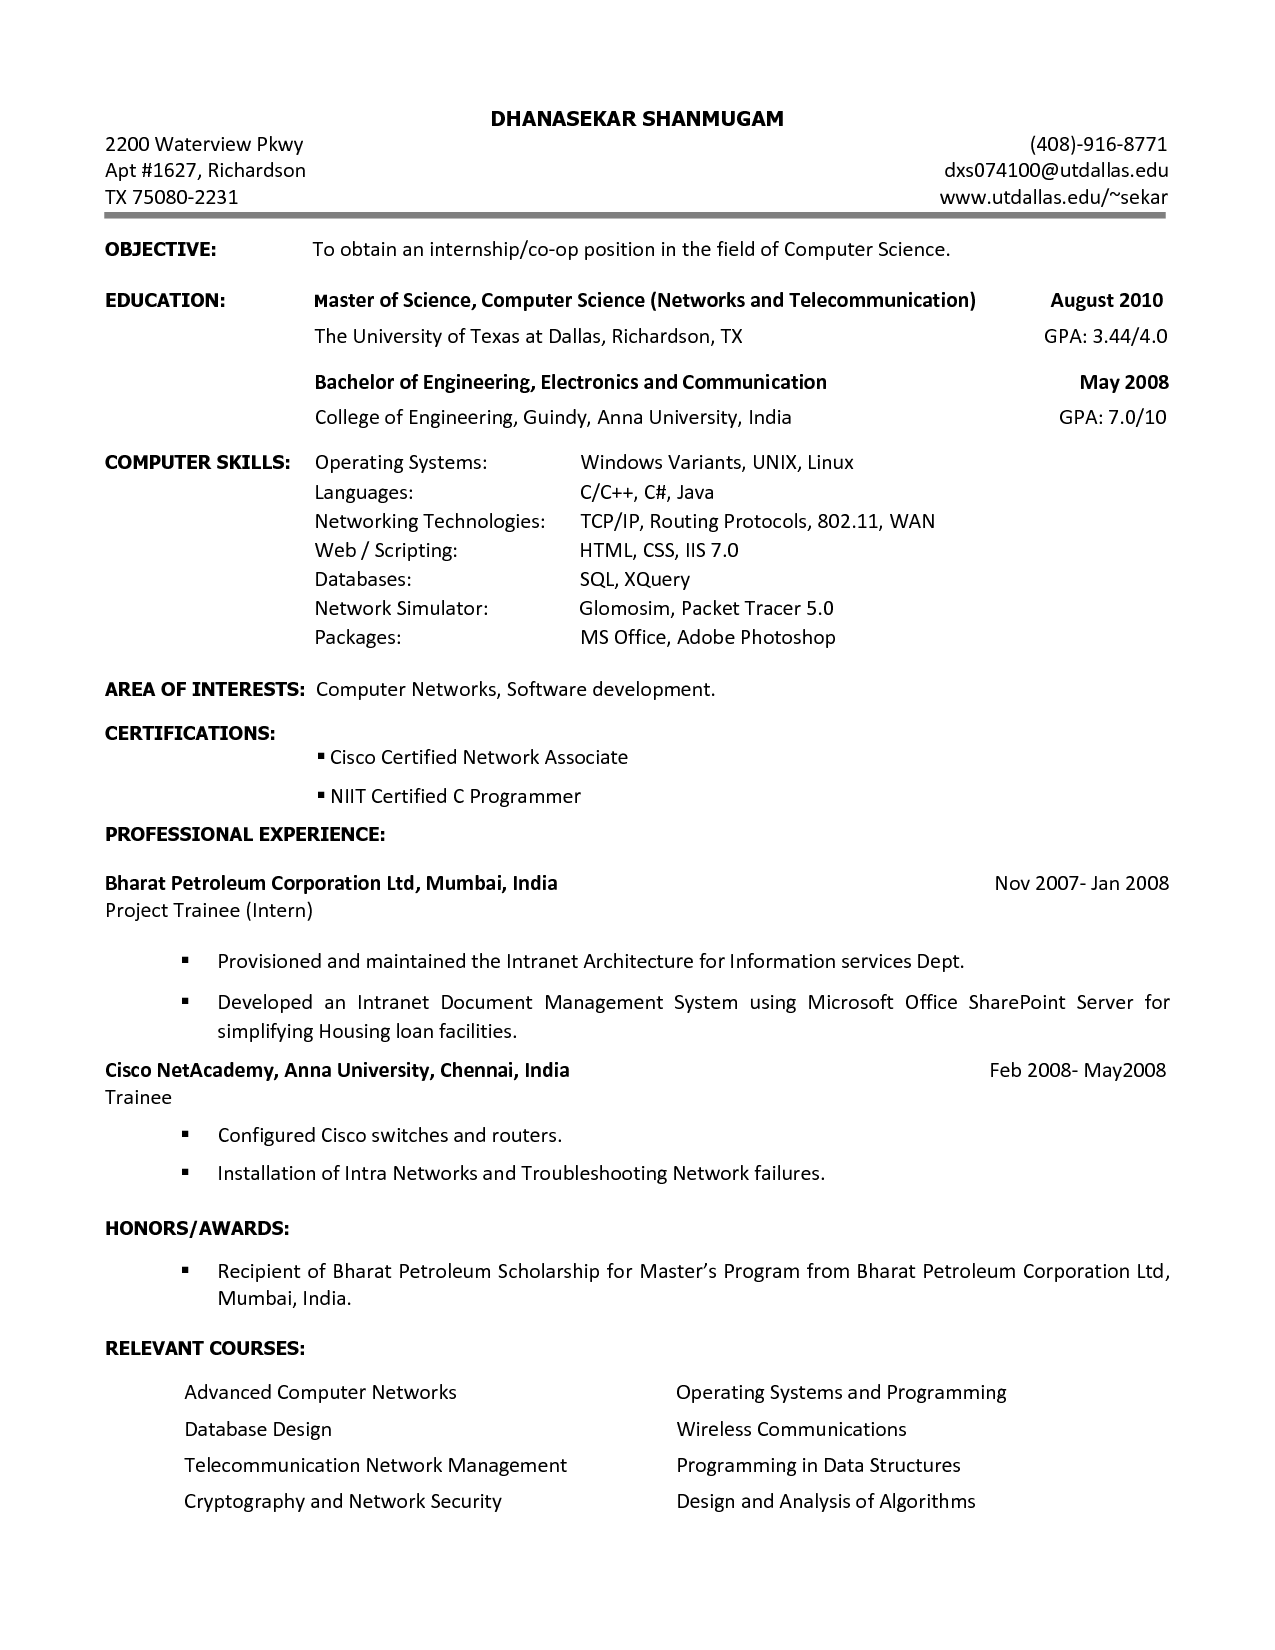 resume Free Downloadable Resume Builder resume builder free download templates builder